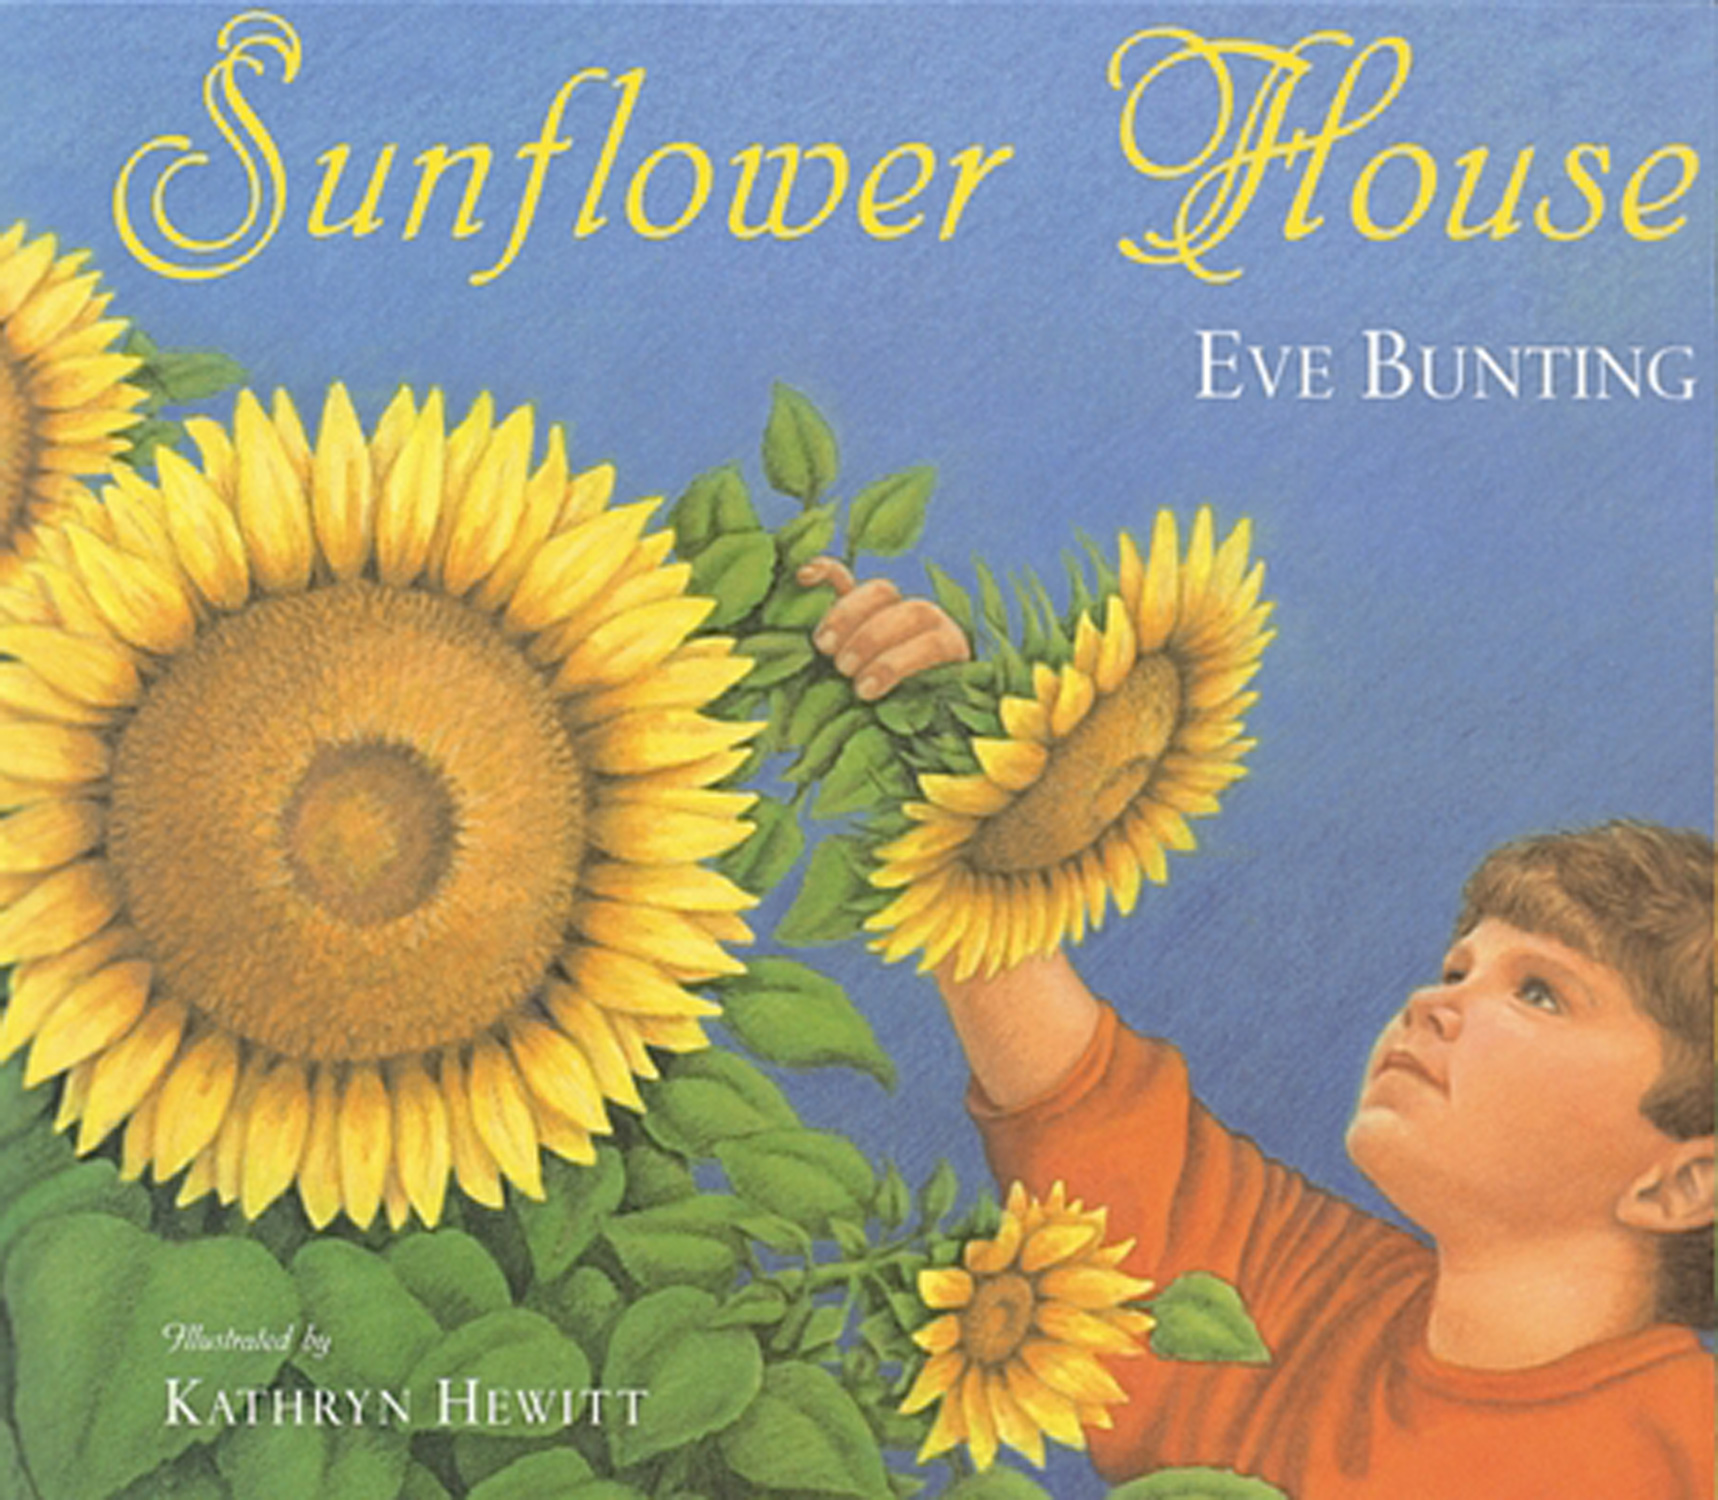 Sunflower House - Eve Bunting, illustrated by Kathryn HewittHoughton Mifflin Harcourt 1999Sunflower seeds sewn in a circle--and watered, weeded, and watched--eventually grow into a beautiful sunflower house with lots of room inside for three friends and their imaginations. When summer's over and the sunflowers fall, the friends save seeds to plant next spring.